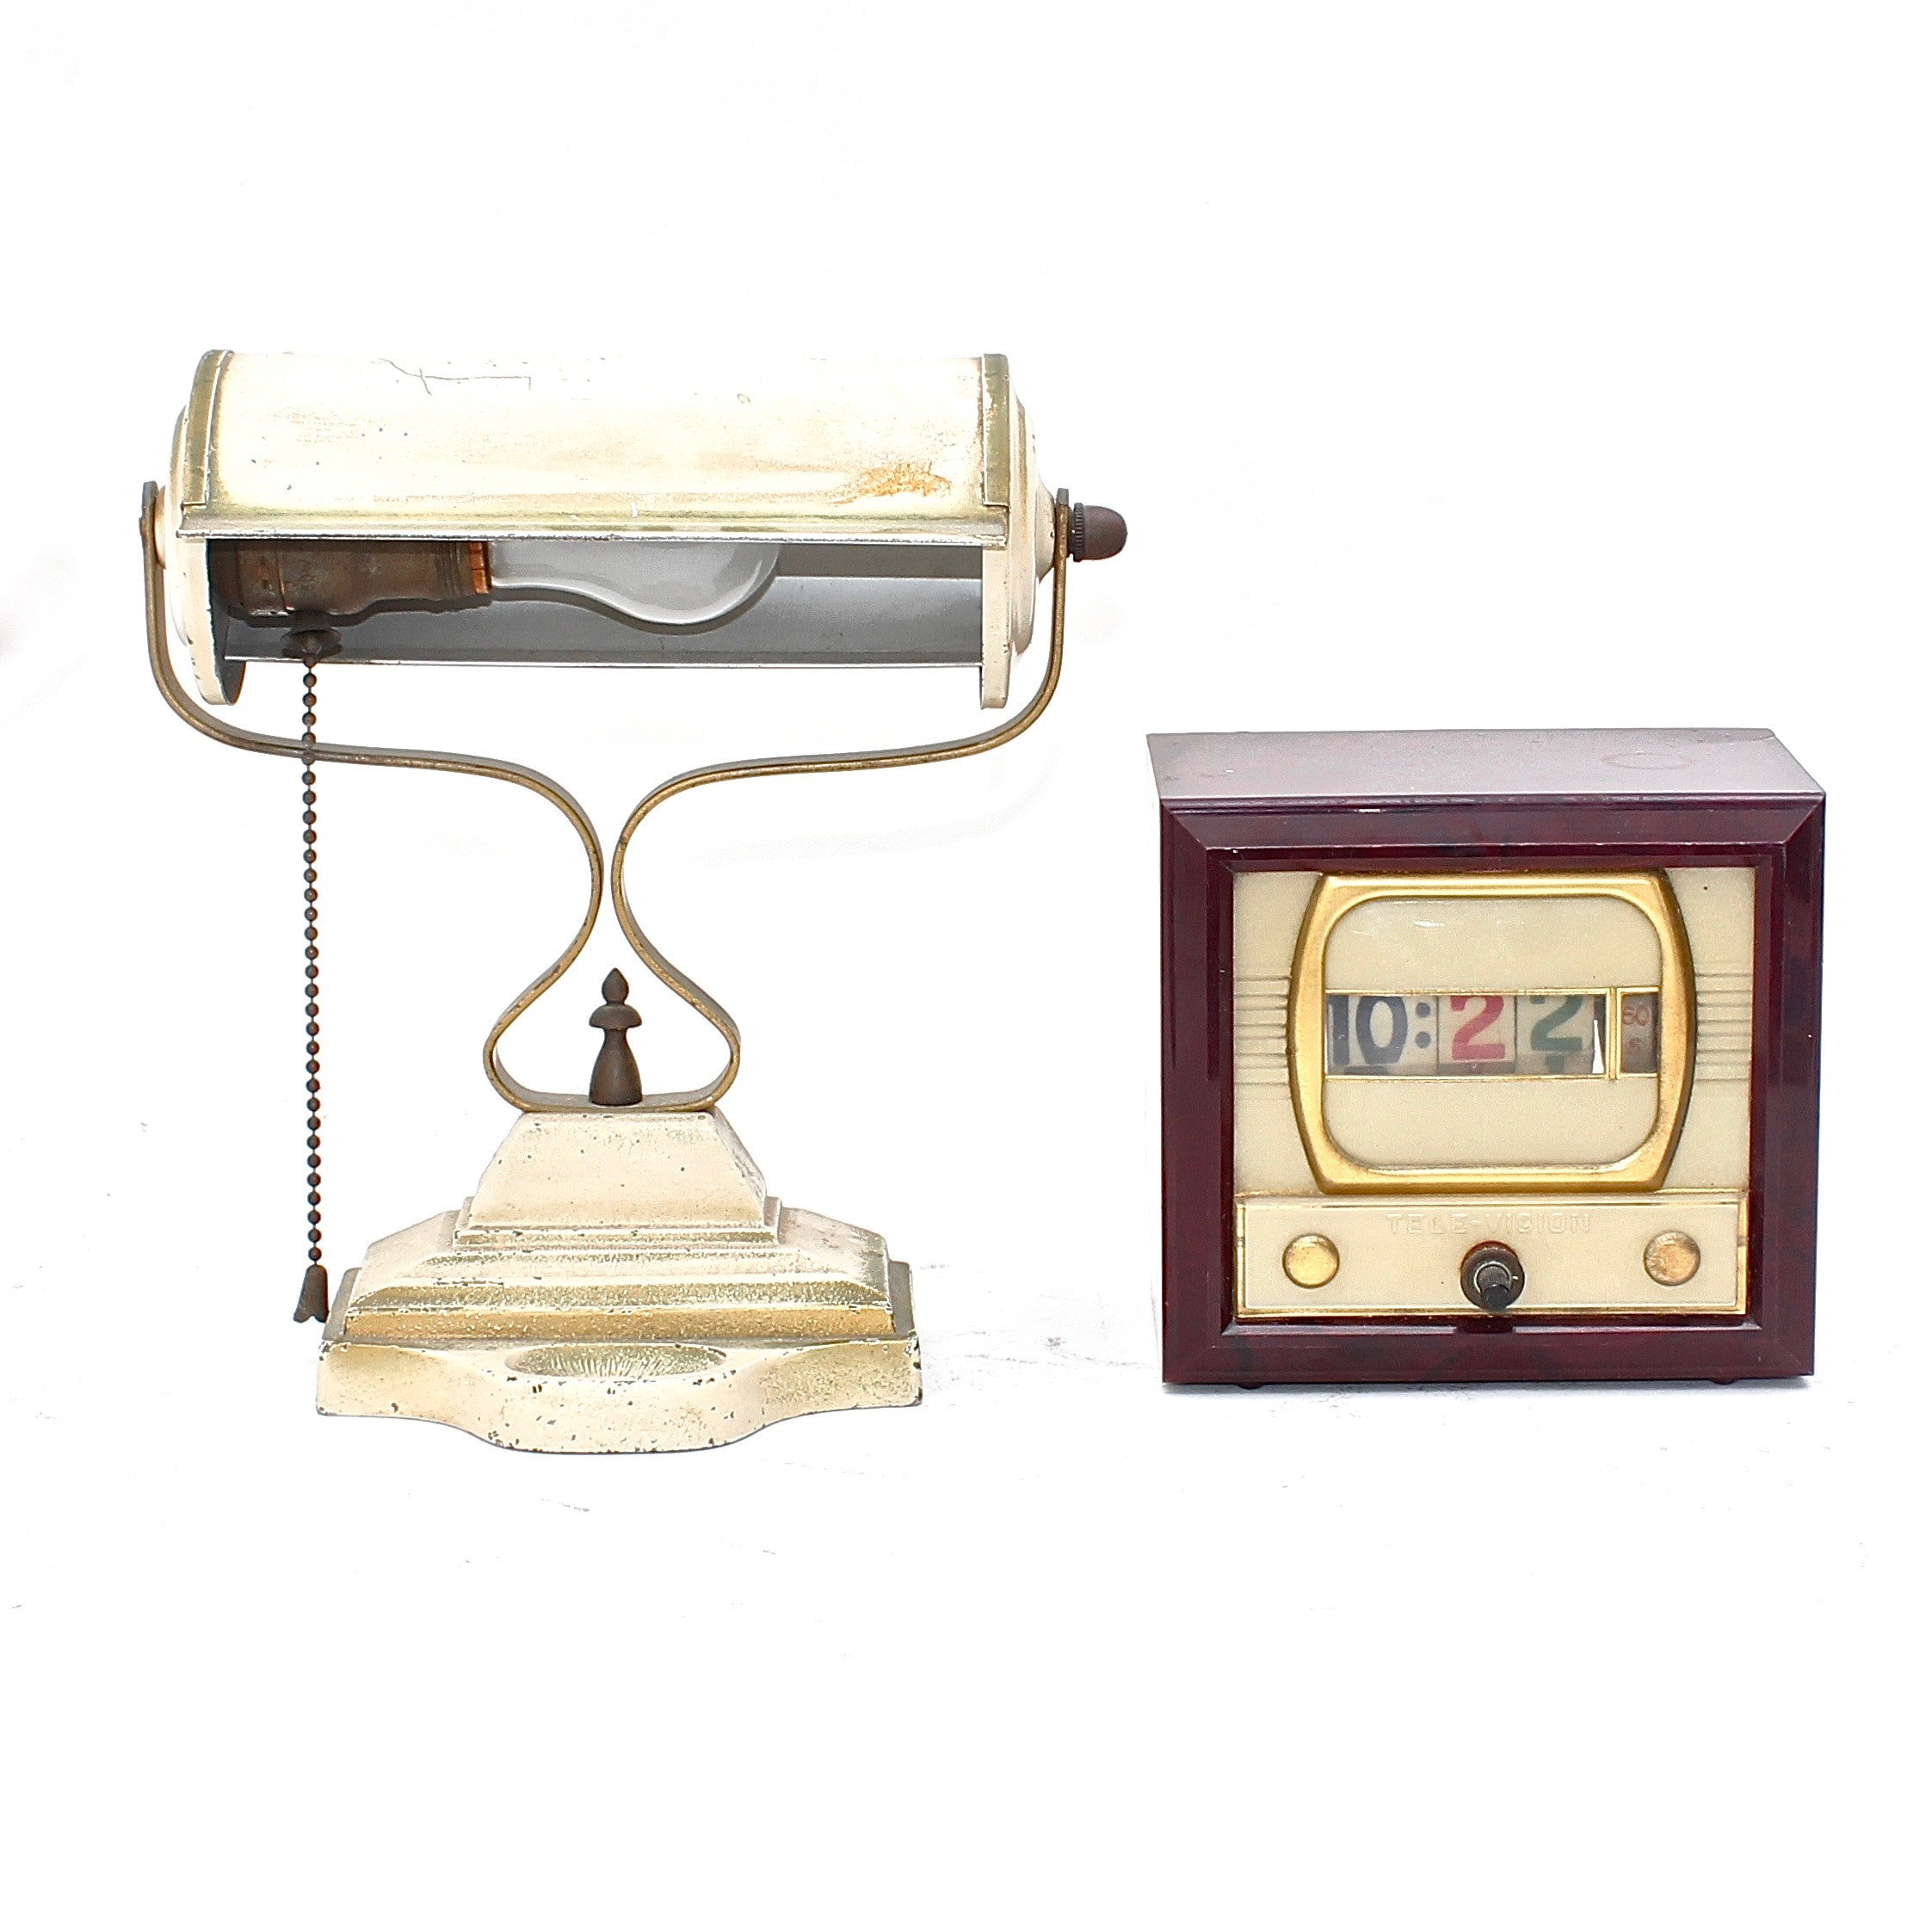 Vintage Banker's Desk Lamp and Alarm Clock